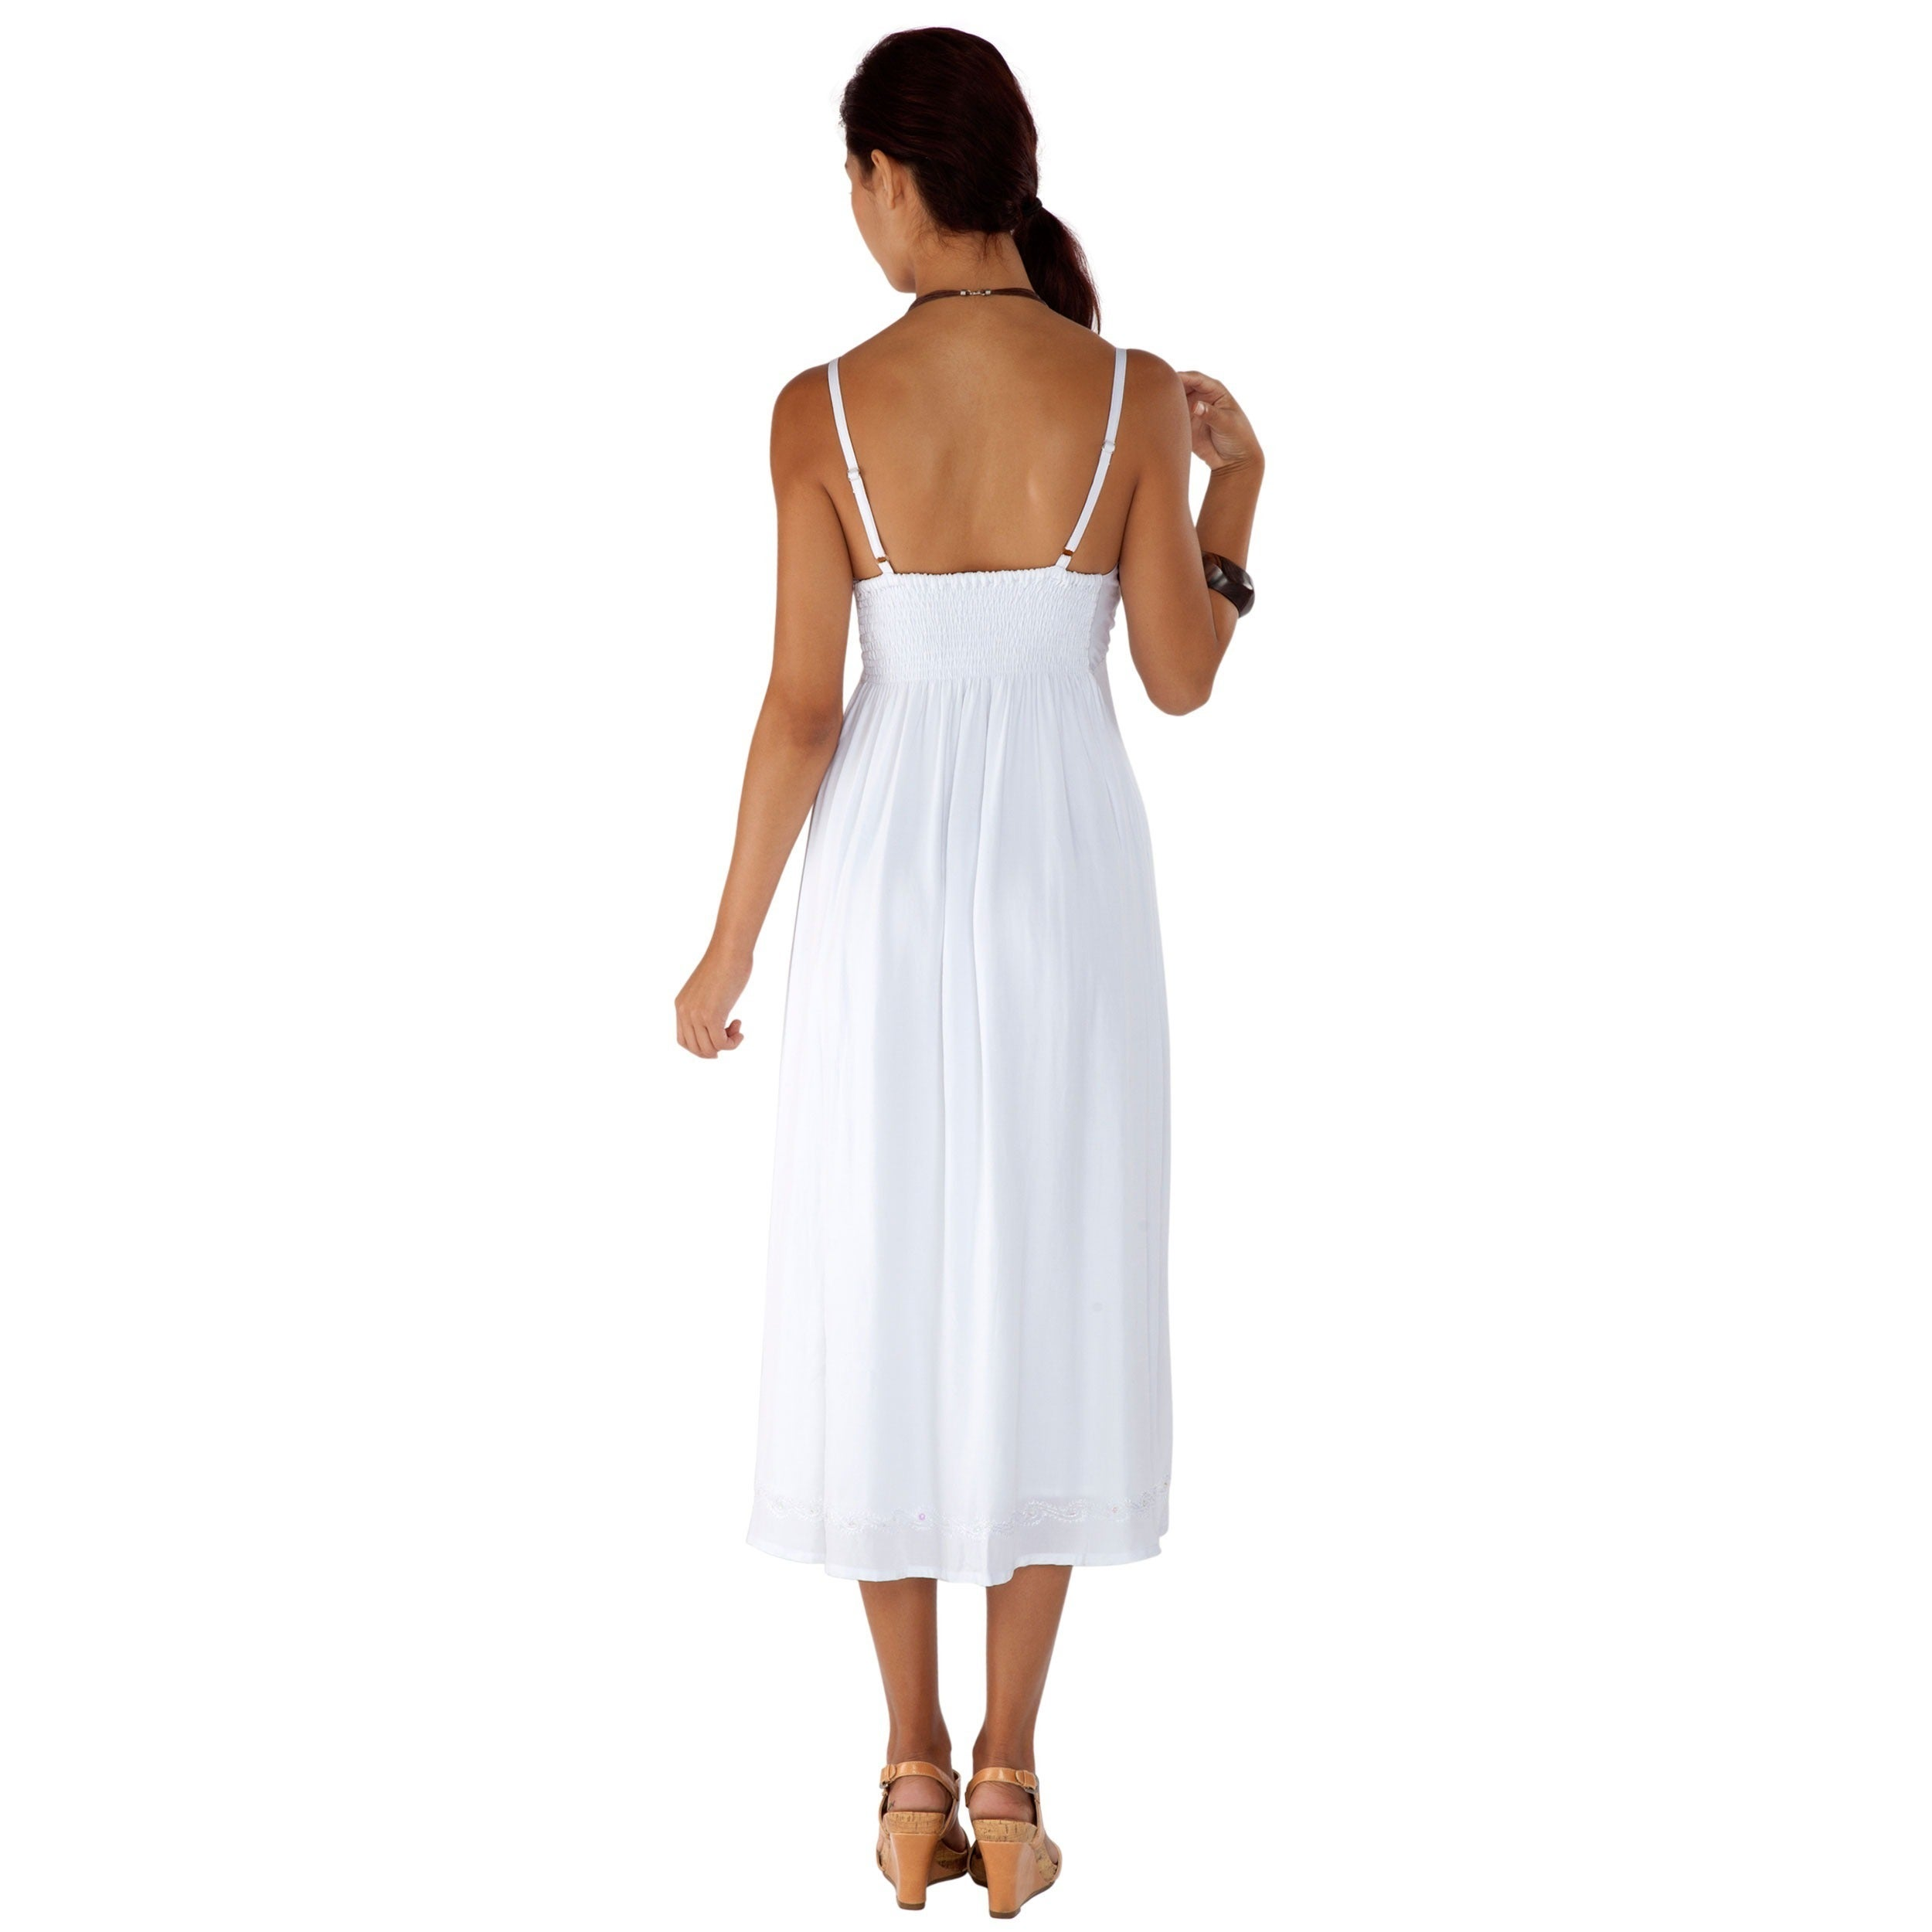 1 World Sarongs Womens Long Summer Embroidered Dress in White Lined in XS